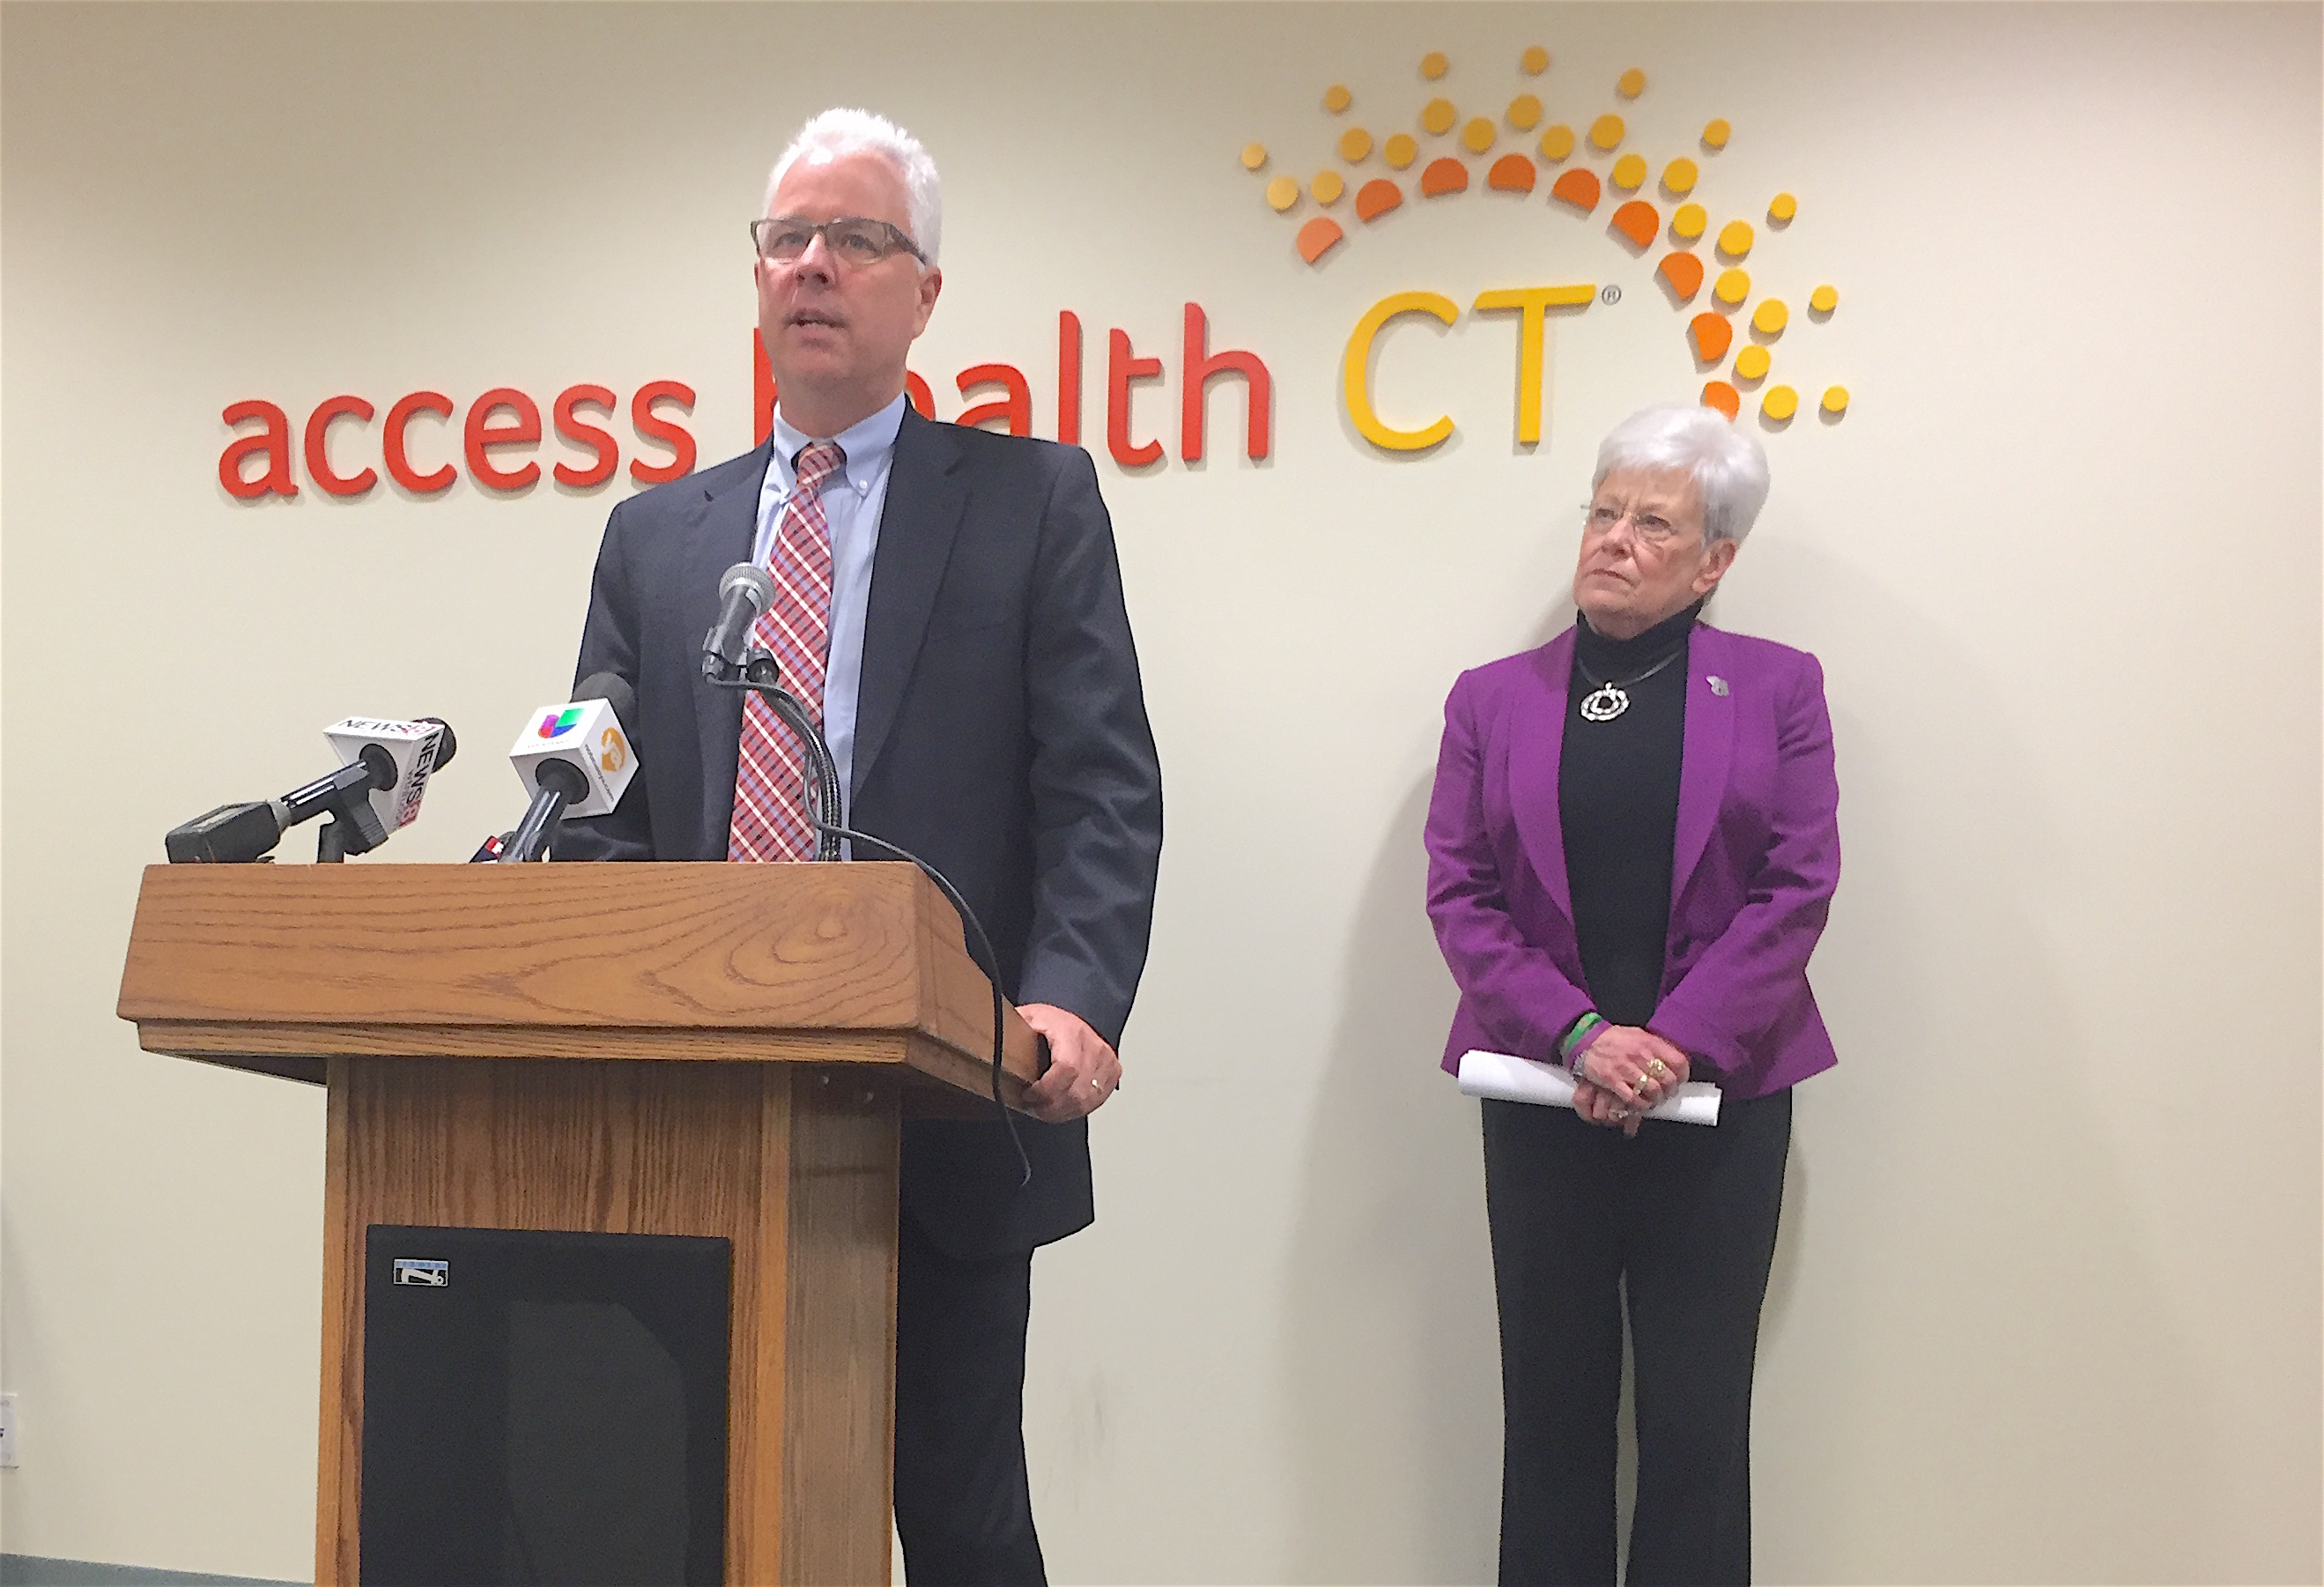 Breaking down this year's Access Health CT open enrollment